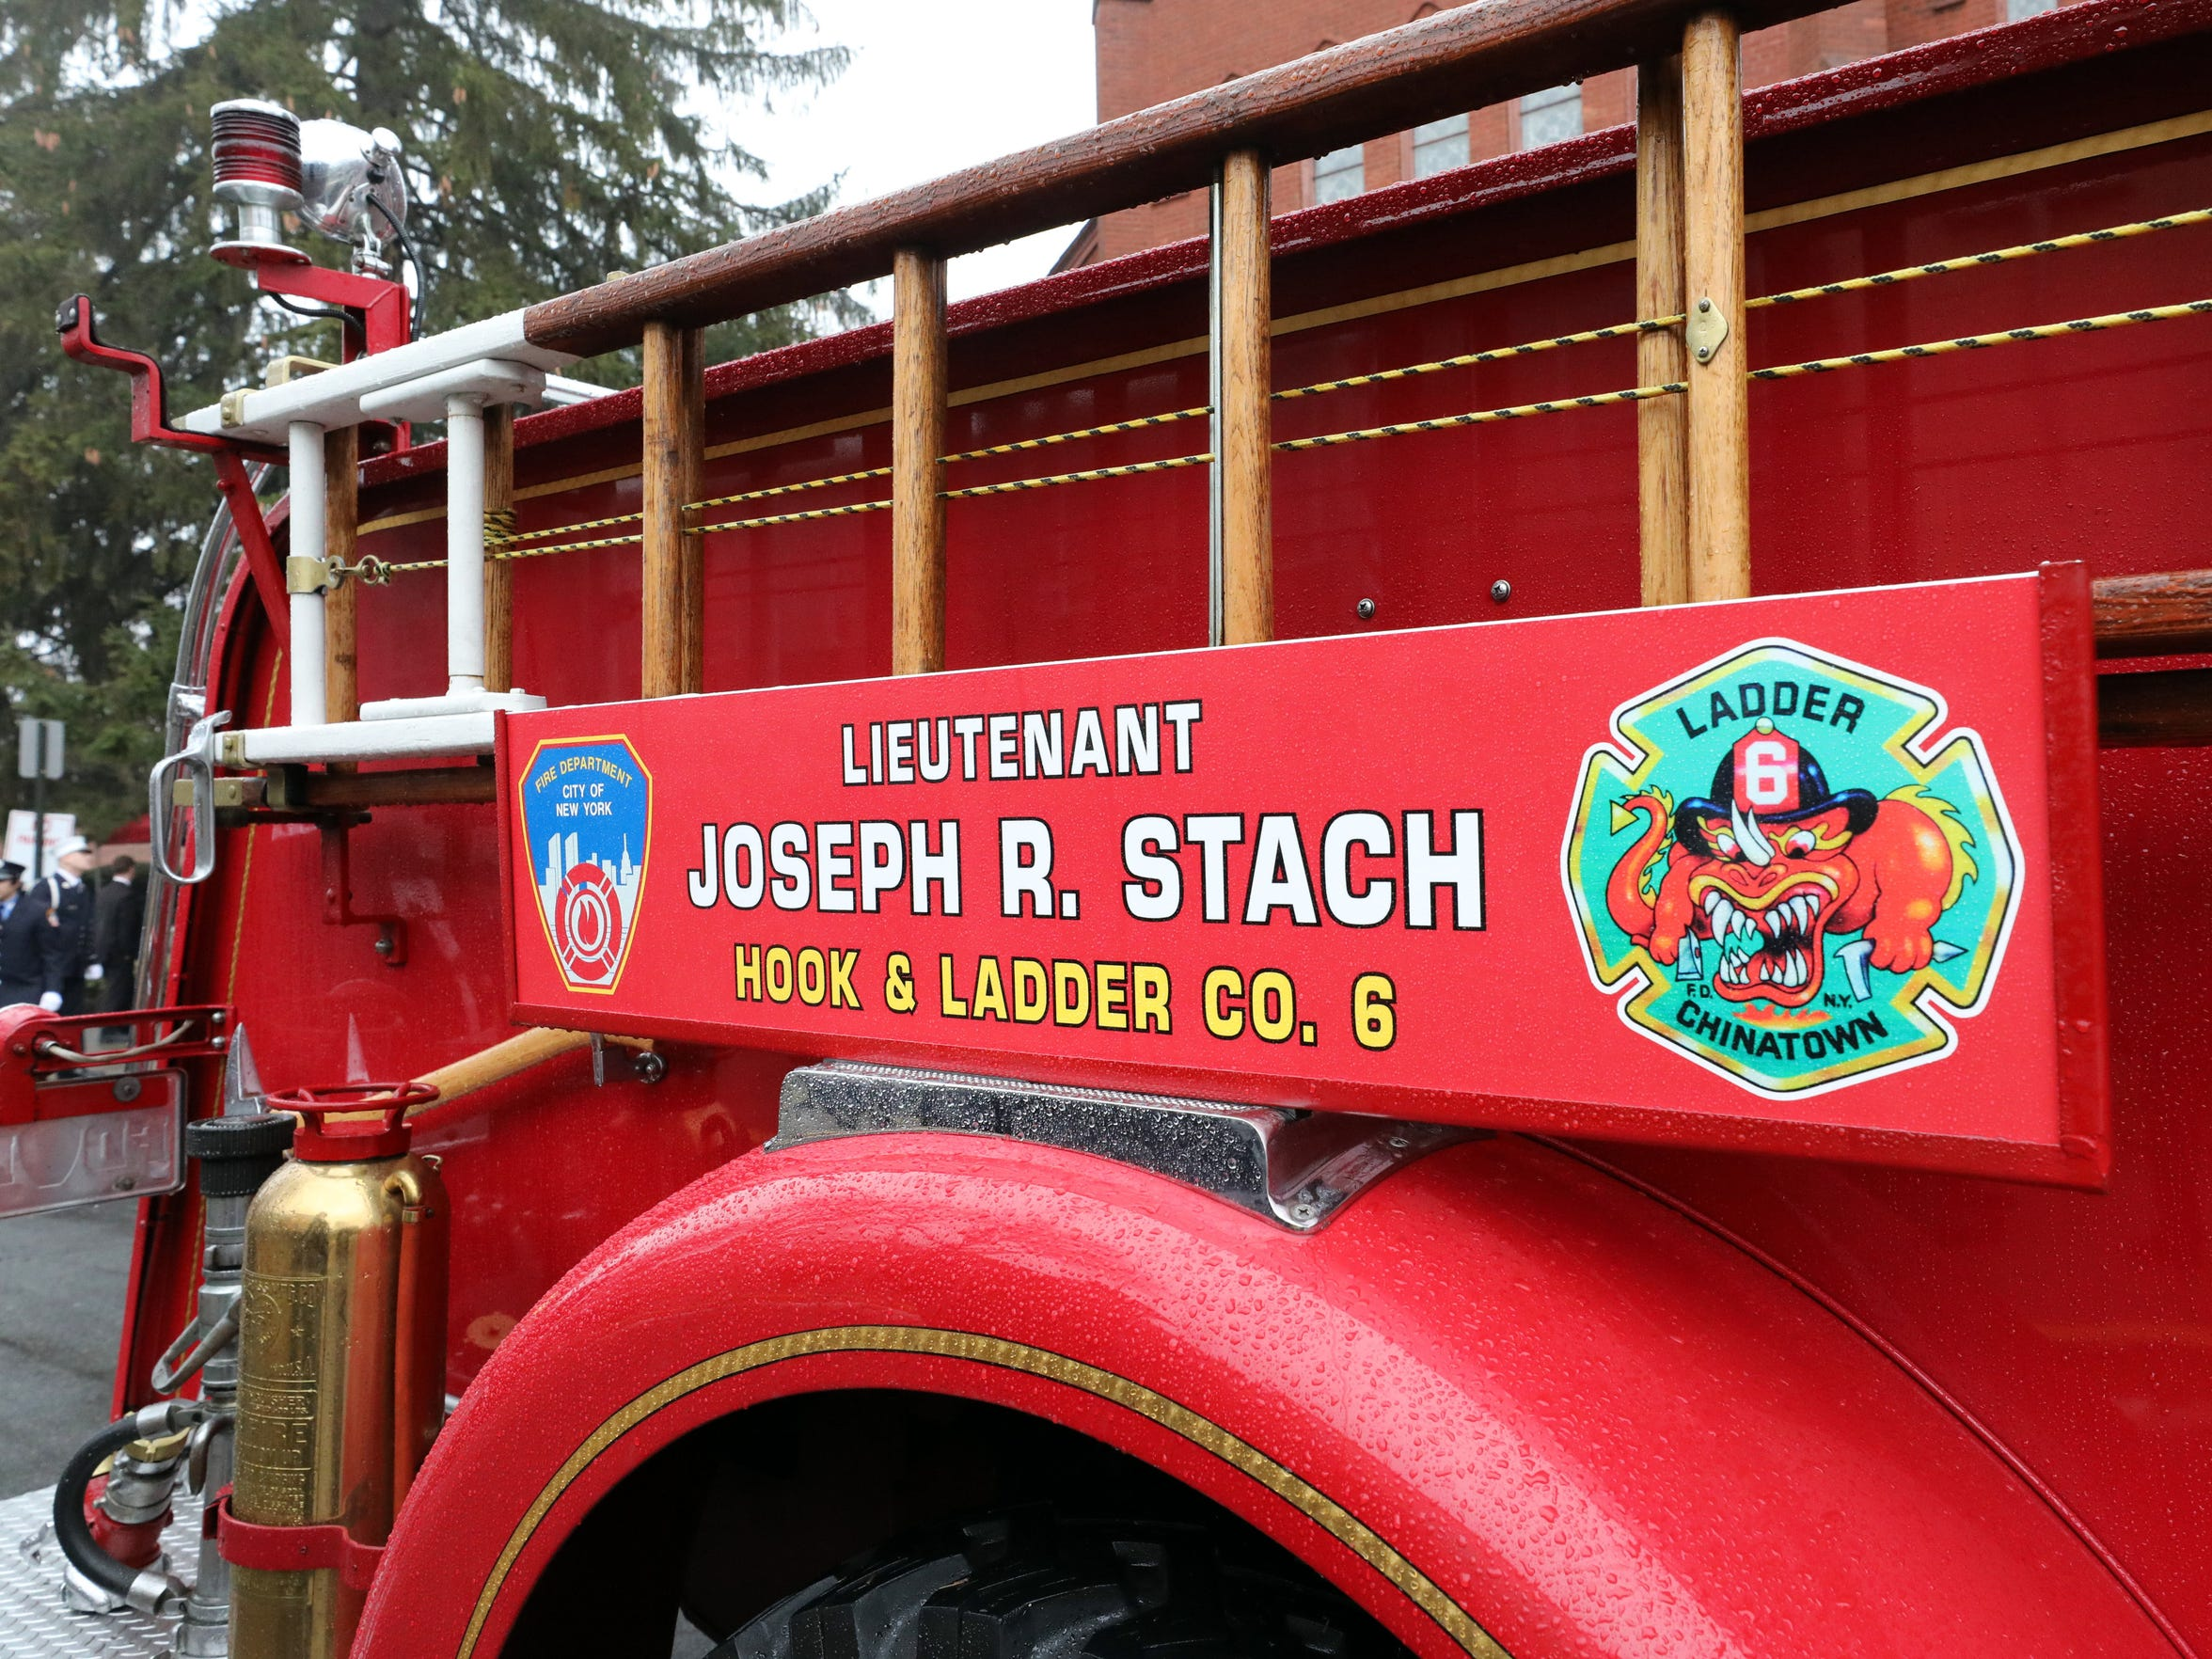 A memorial name plate for FDNY Lt. Joseph Stach is seen on the side of a historical FDNY engine at St. Ann's Church in Nyack, Jan. 12, 2018. Stach died from his battle with 9/11 related pancreatic cancer. He retired from the FDNY in 2010 and was also a Life Member of the Empire Hook & Ladder Co. #1 in Upper Nyack.